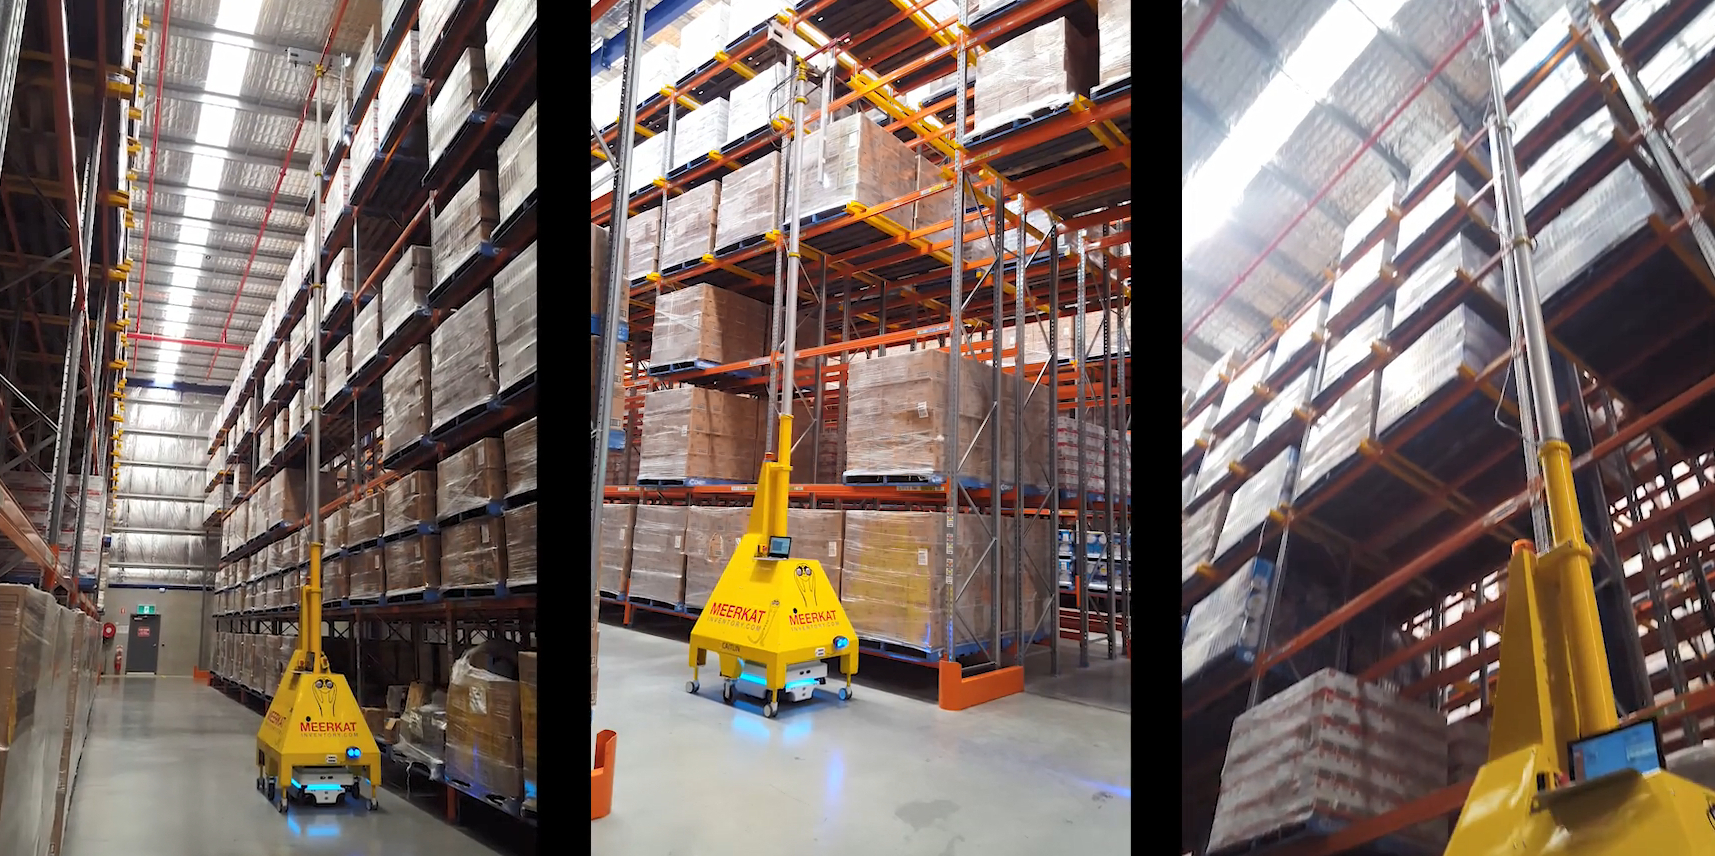 Low cost sensors – Meerkat - Automating inventory management - image courtesy of DHL Supply Chain UK